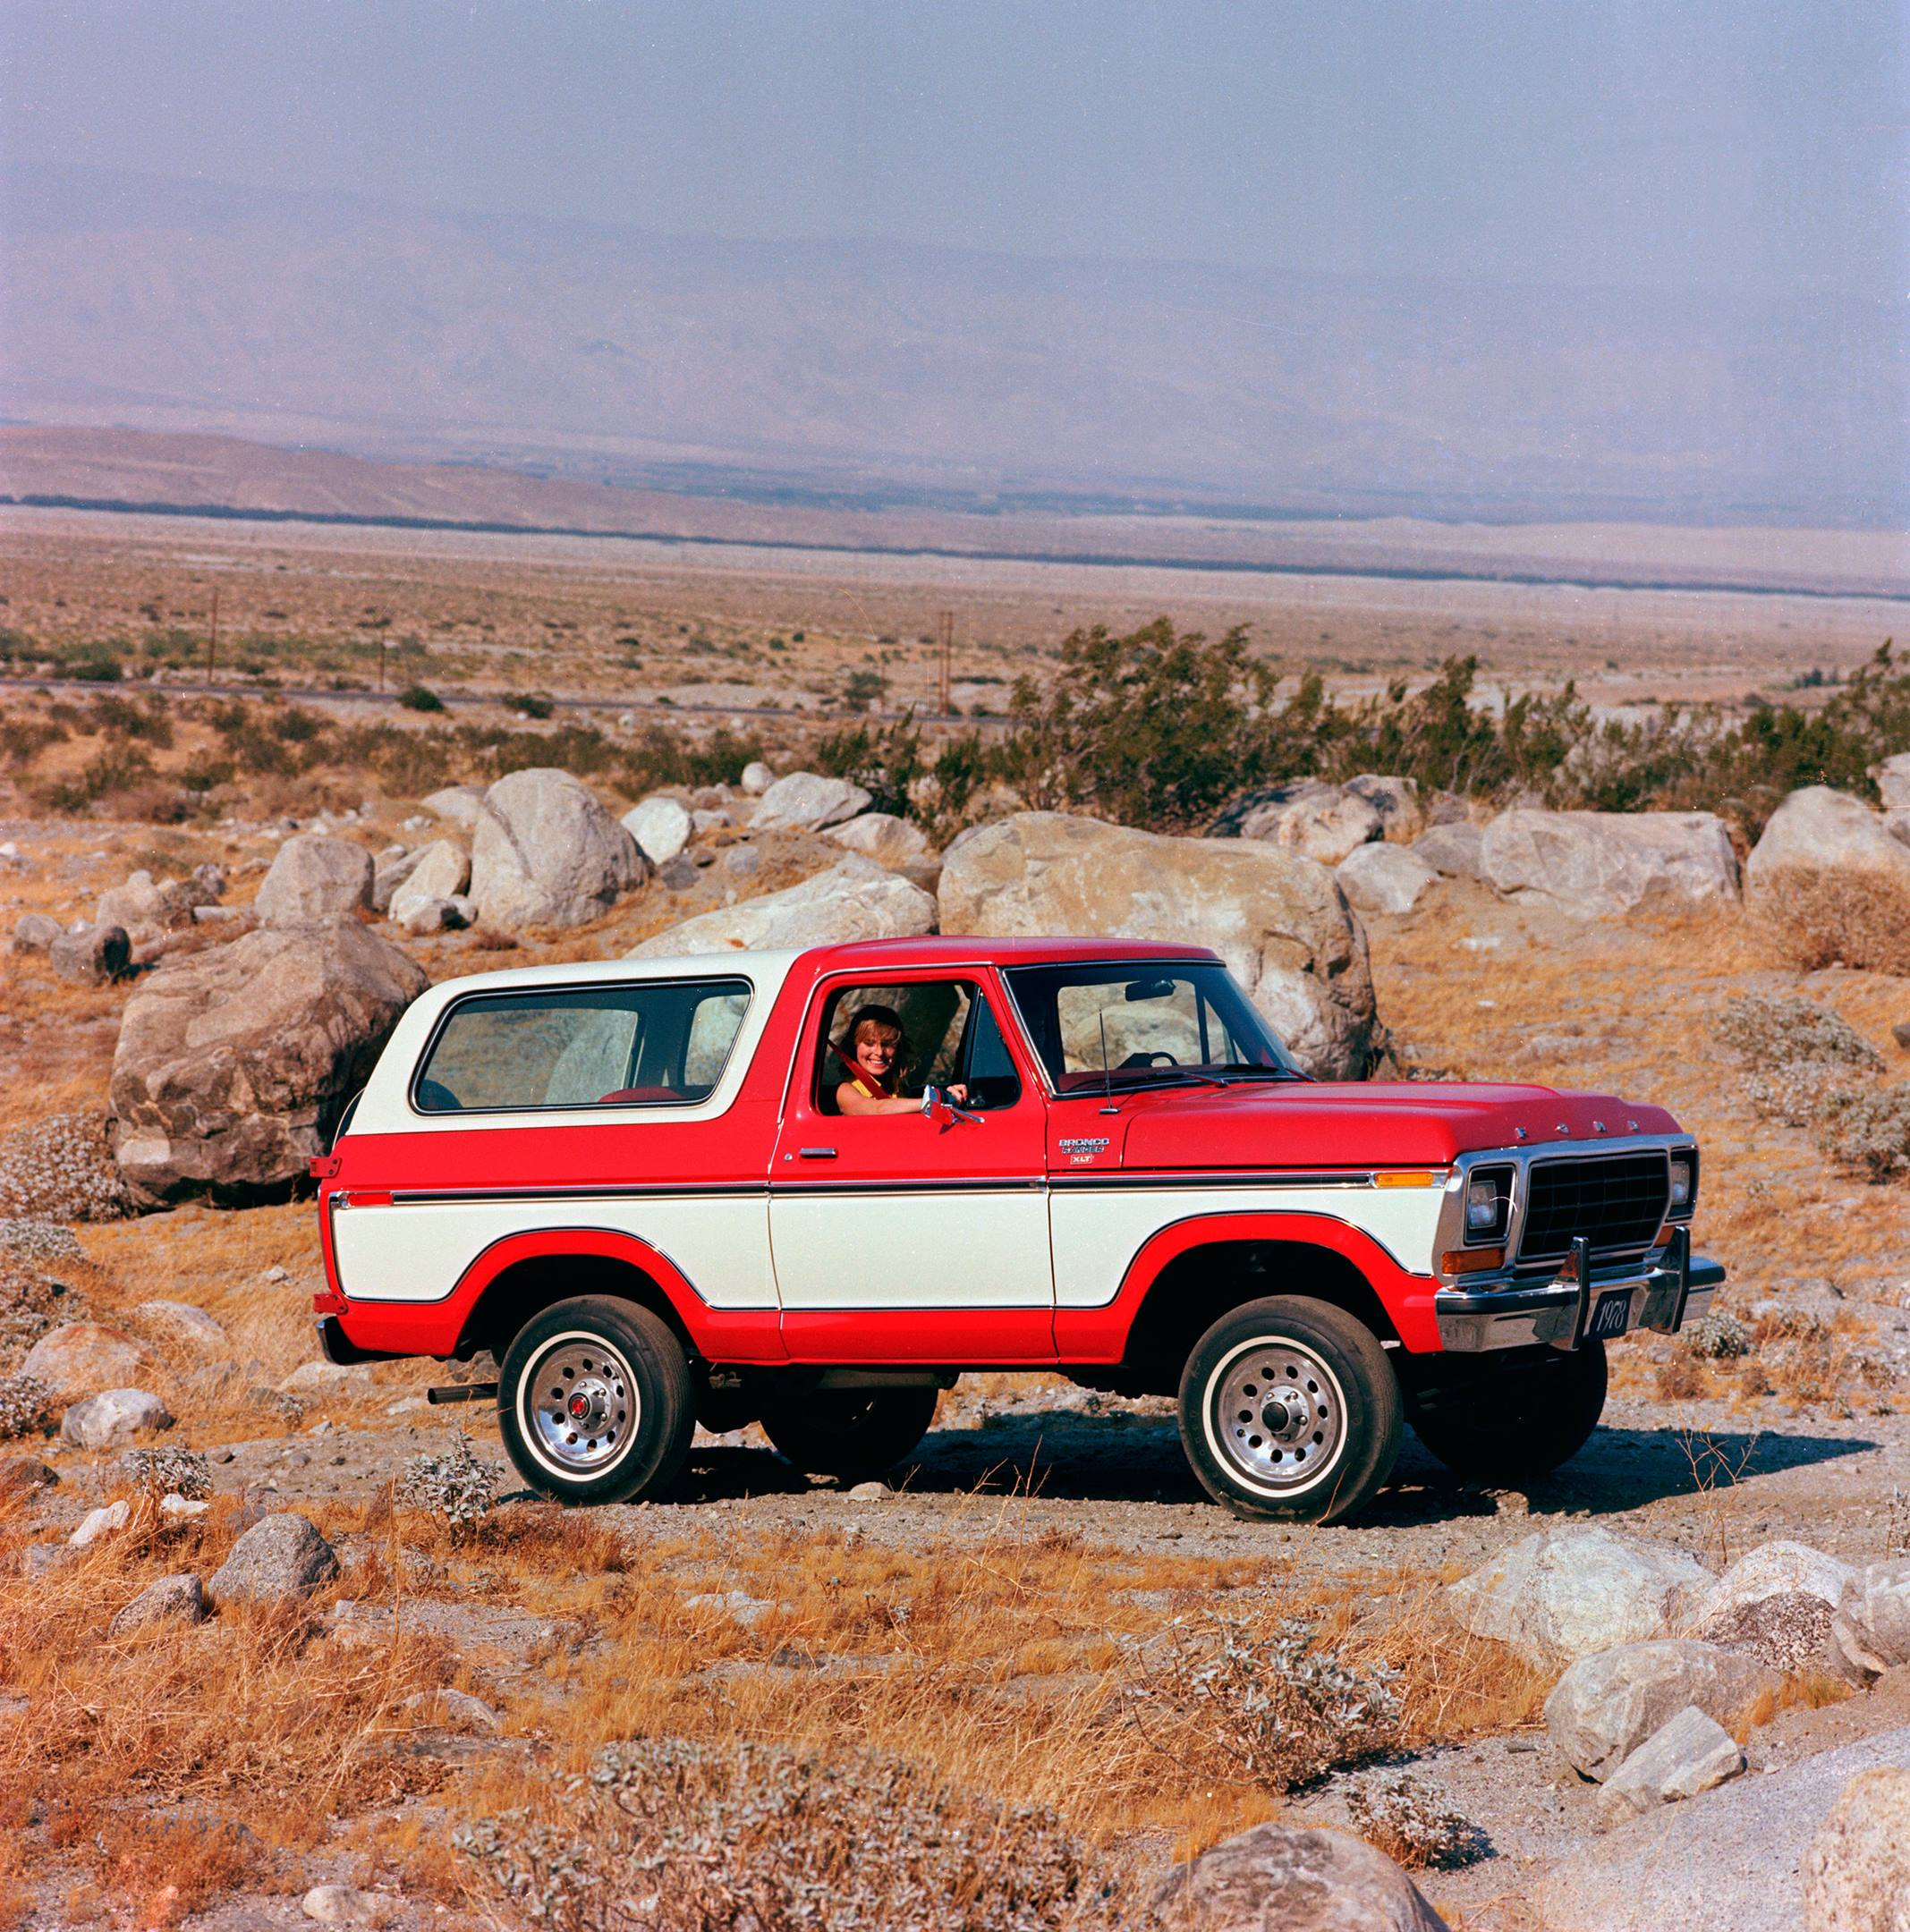 Generation II Ford Bronco